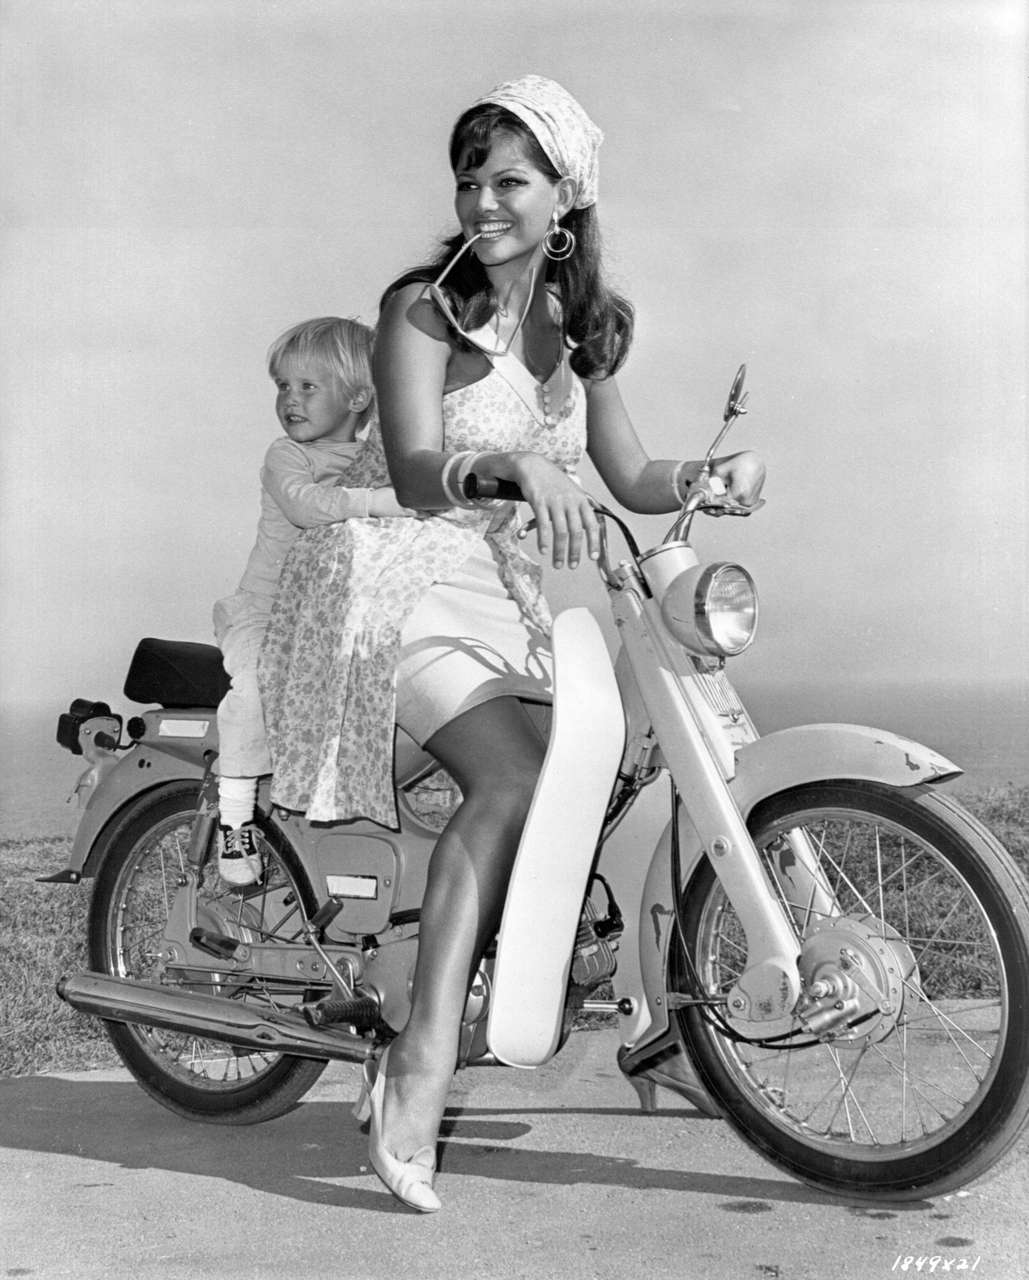 Claudia Cardinale Posing On A Motorbike With Her Son In Italy C 1957 NSF